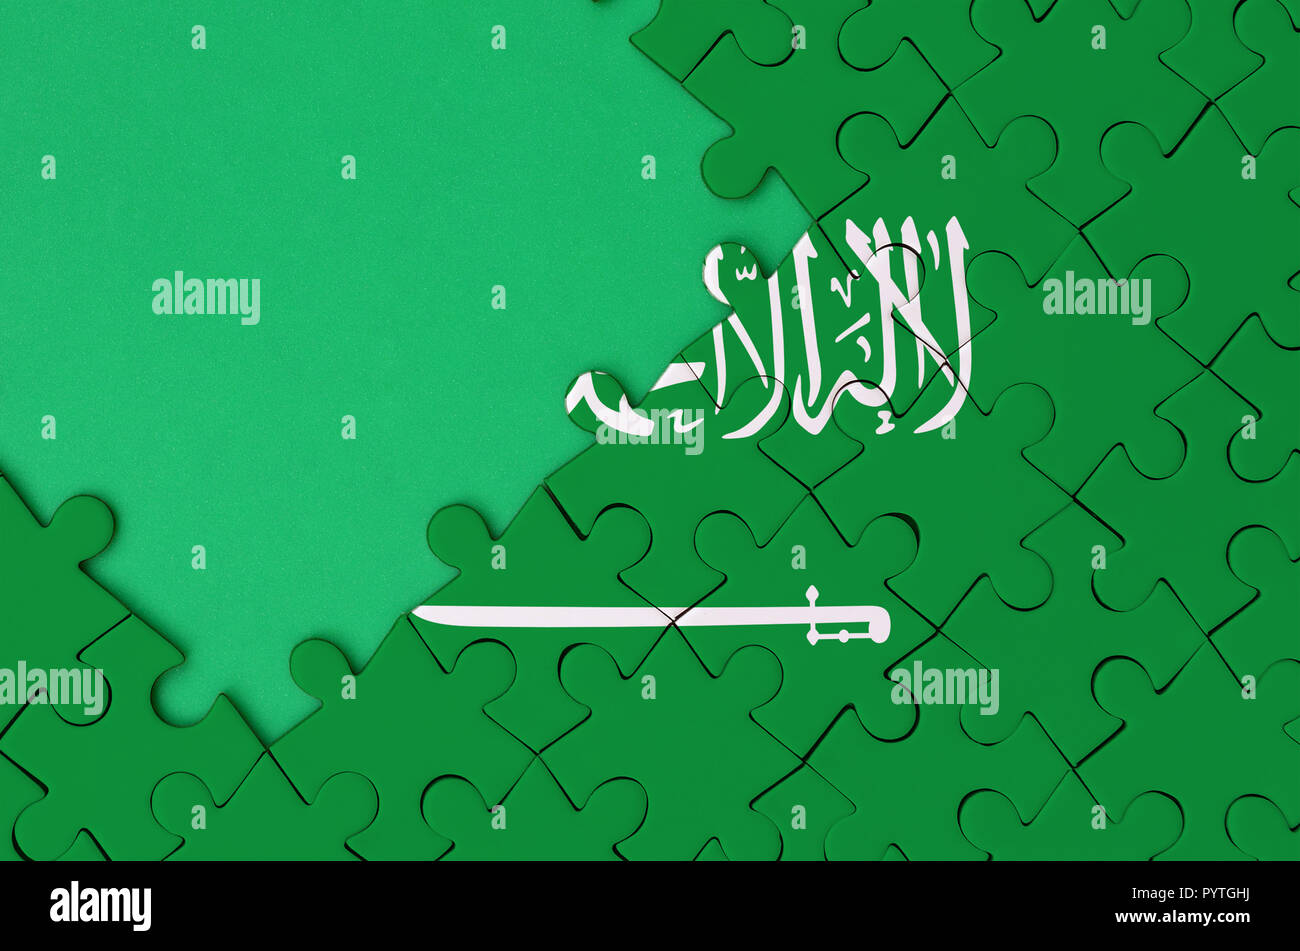 Saudi Arabia flag  is depicted on a completed jigsaw puzzle with free green copy space on the left side. - Stock Image